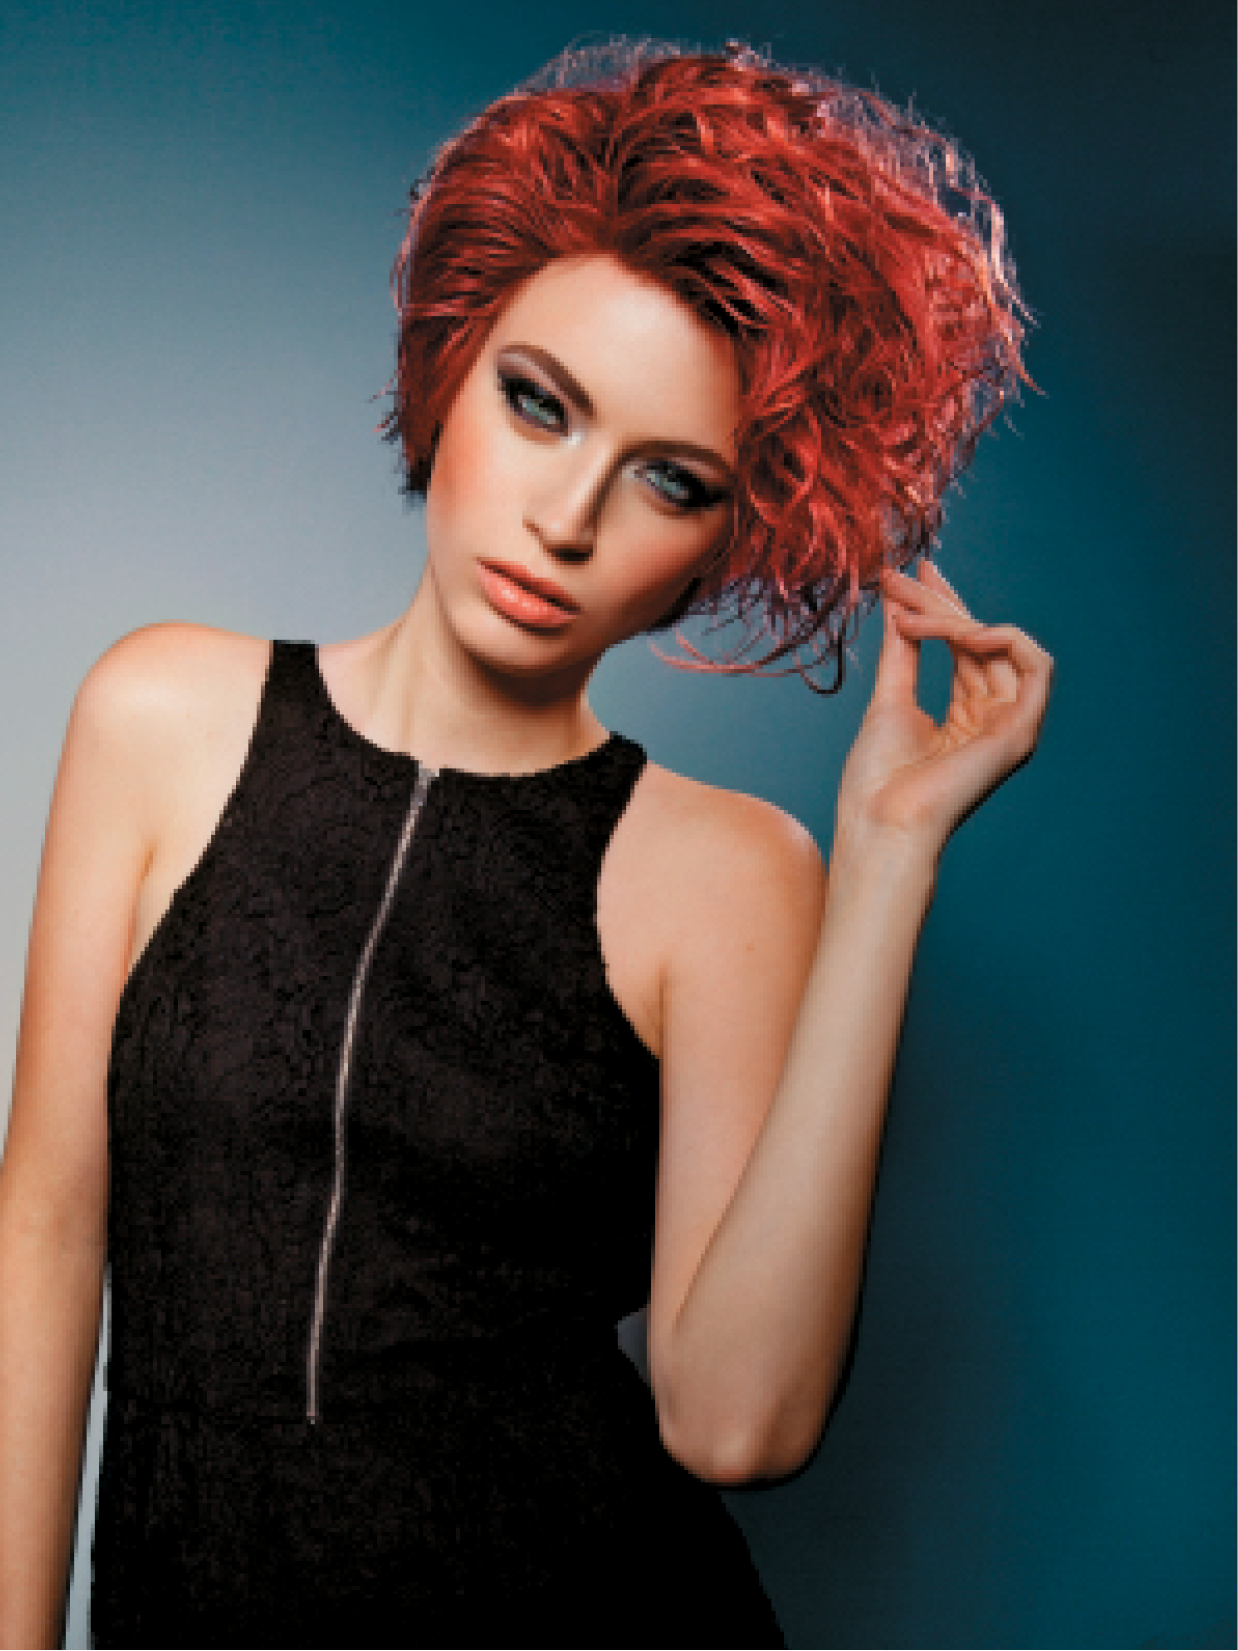 The carnival technique used for this look combines warm wood and sand hues with fiery red. Abraham Sprinkle started on hair at a level 6 and existing highlights at a level 8, then used Keratin Complex KeraBrilliance, Metamorfix and Demi-Glaze Activator for island wood, aurora red and titian sand shades.